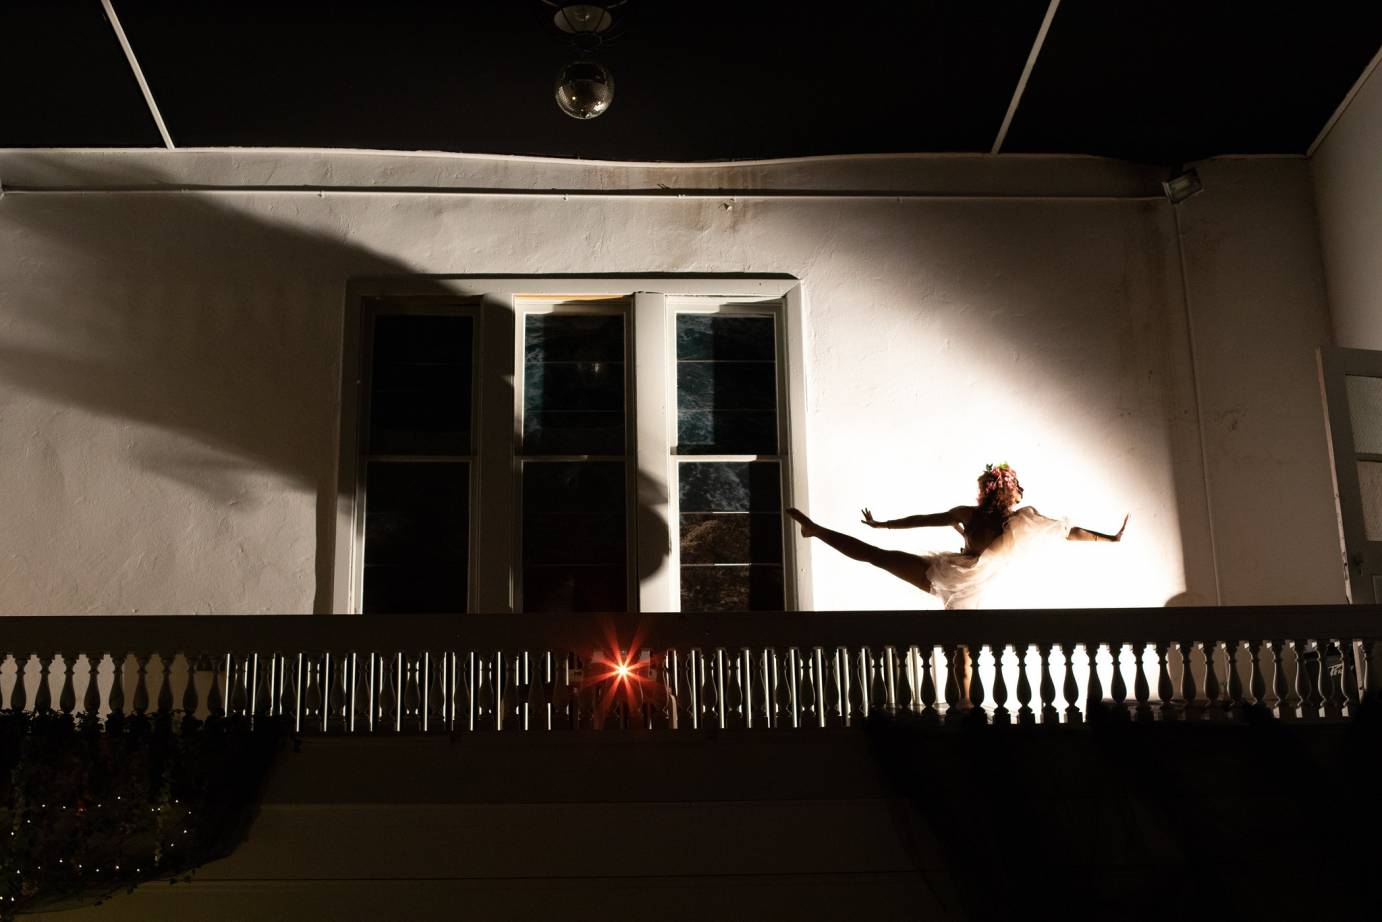 A woman extends her limbs in shadows on a balcony